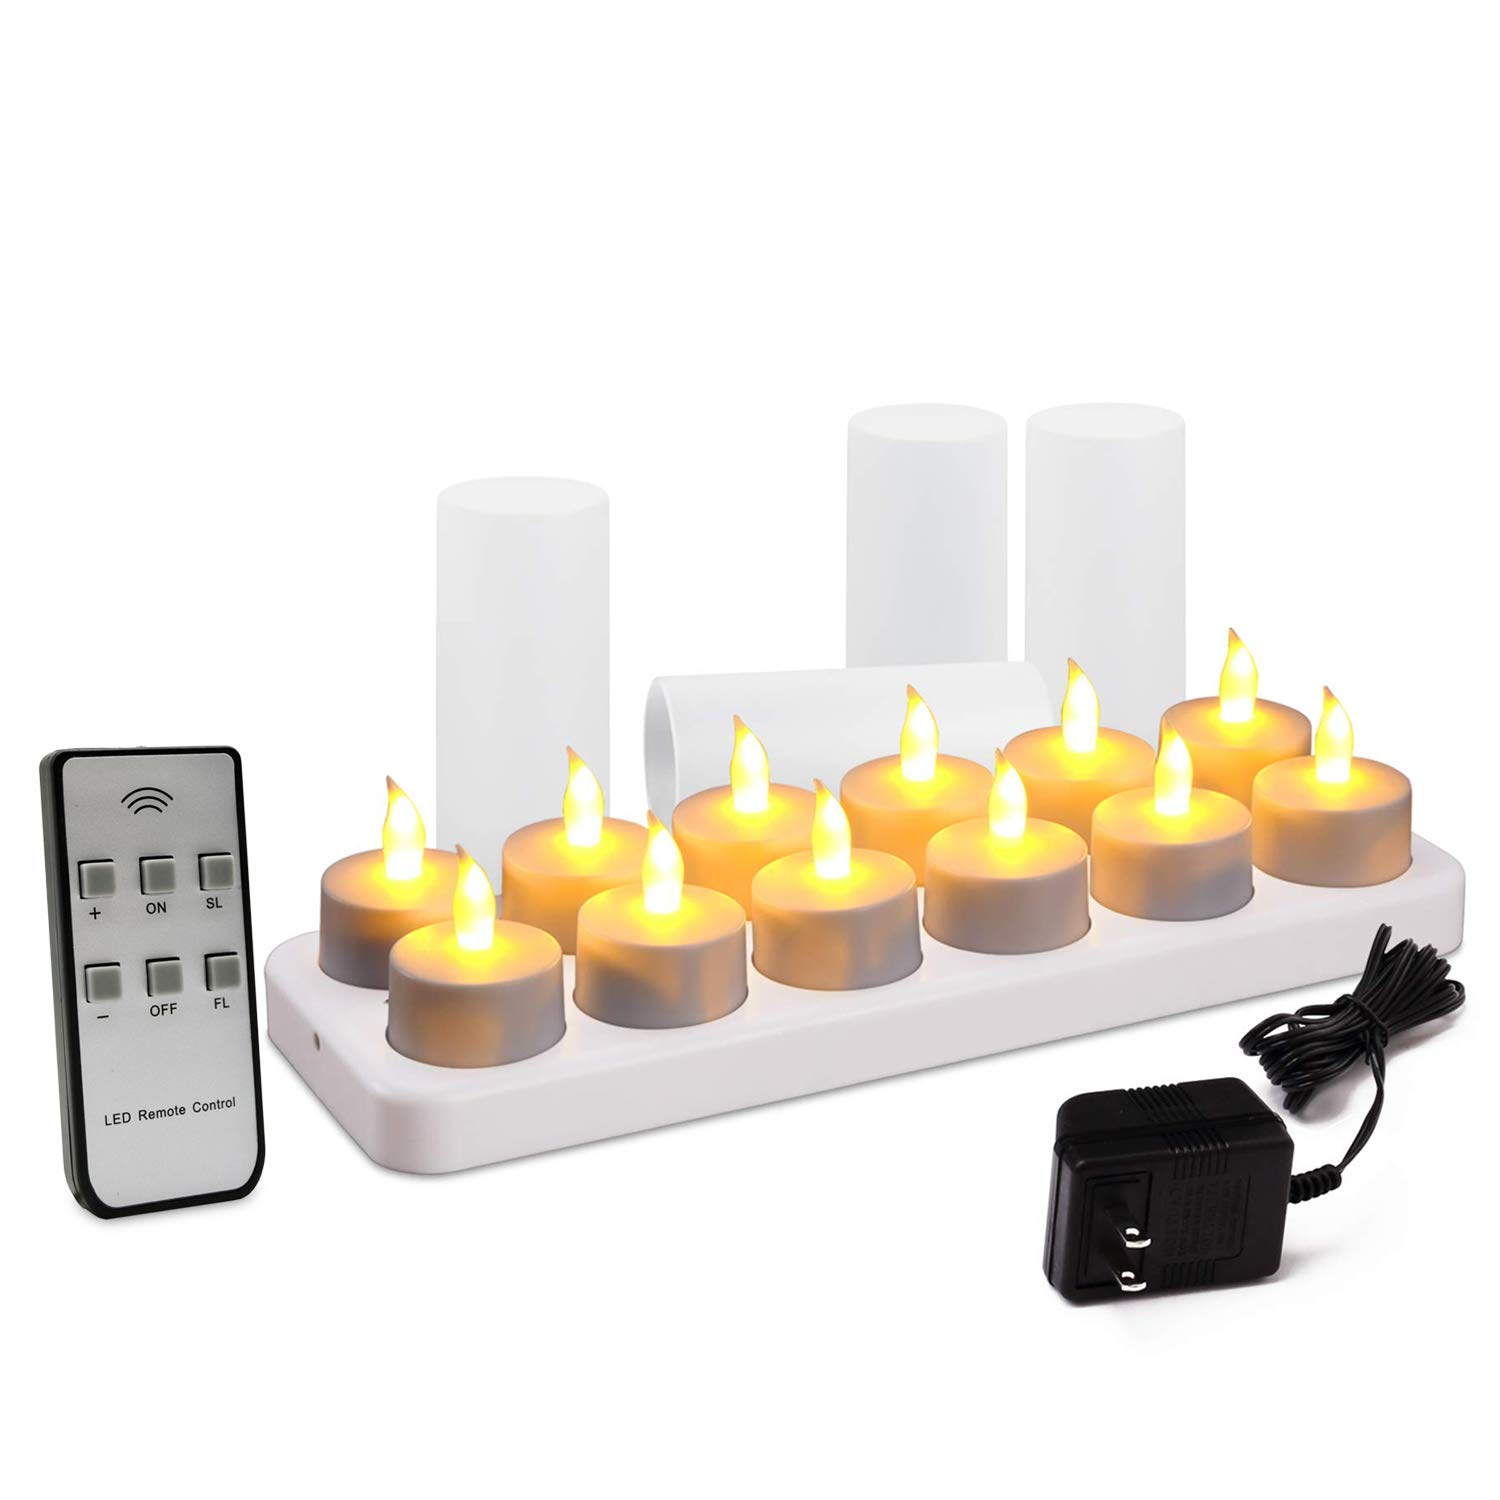 Flameless Tealight LED Candle with Rechargeable Base and Frosted Holder, Remote Timer Control, White Set of 12 by Aglary